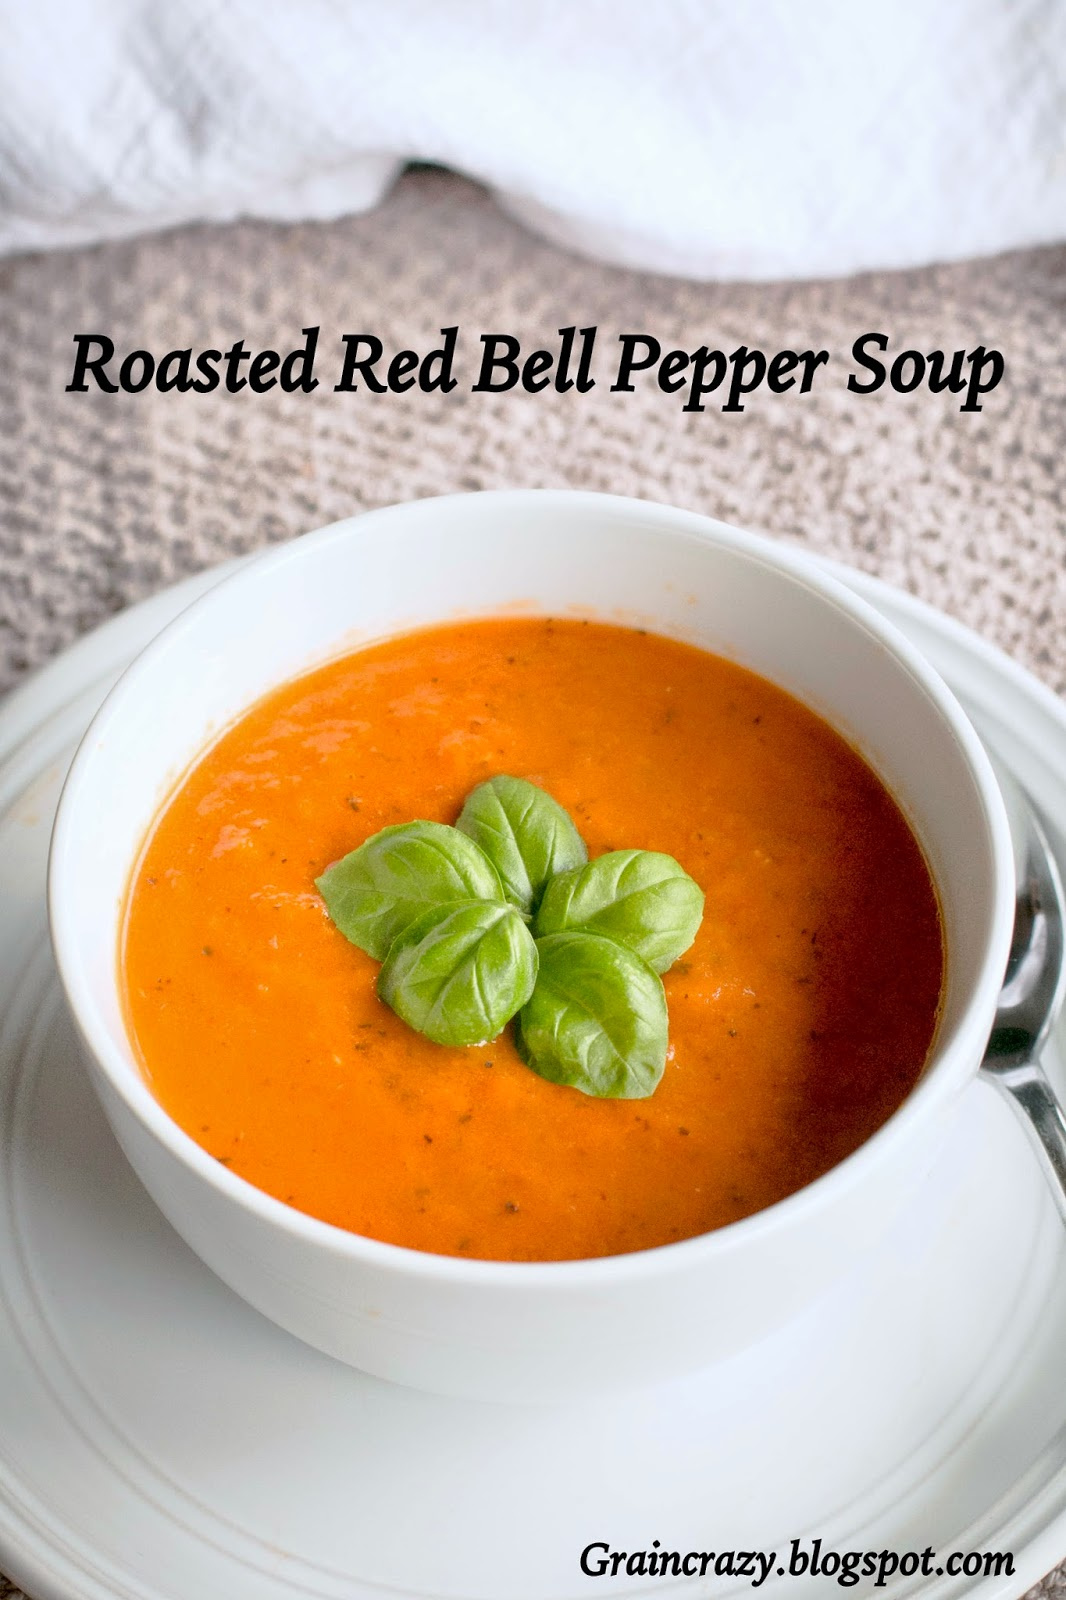 Grain Crazy: Roasted Red Pepper Soup